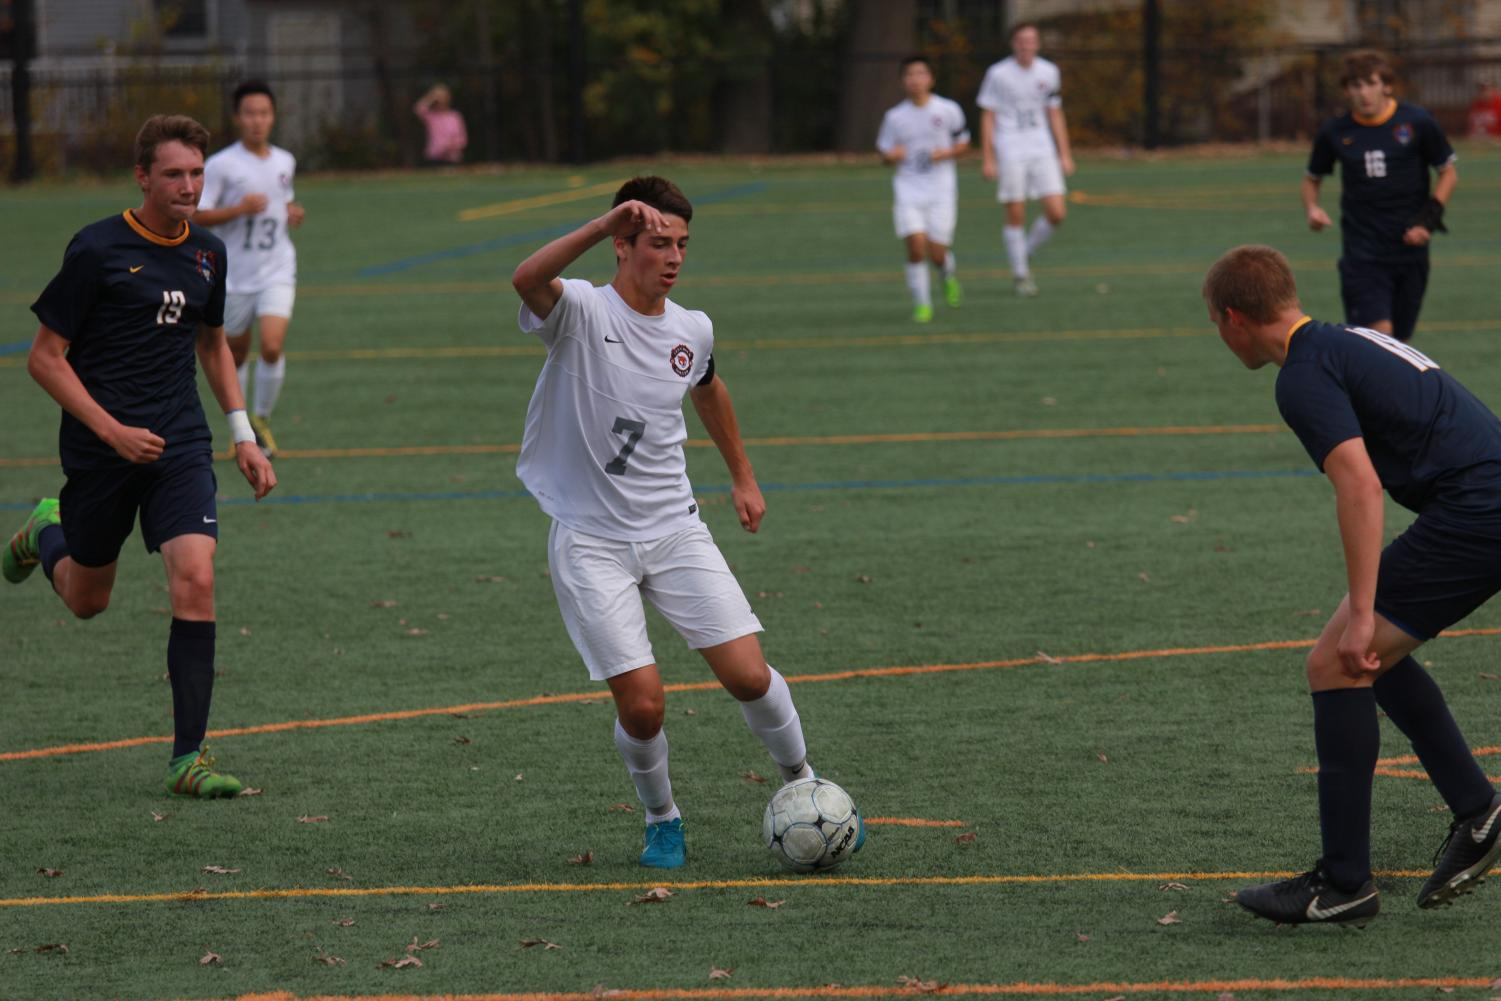 Nick Rogers keeps the ball in possession against Pequannock in the second round of the NJSIAA Tournament.  Despite losing the boys varsity soccer team played one of their best seasons in 30 years.